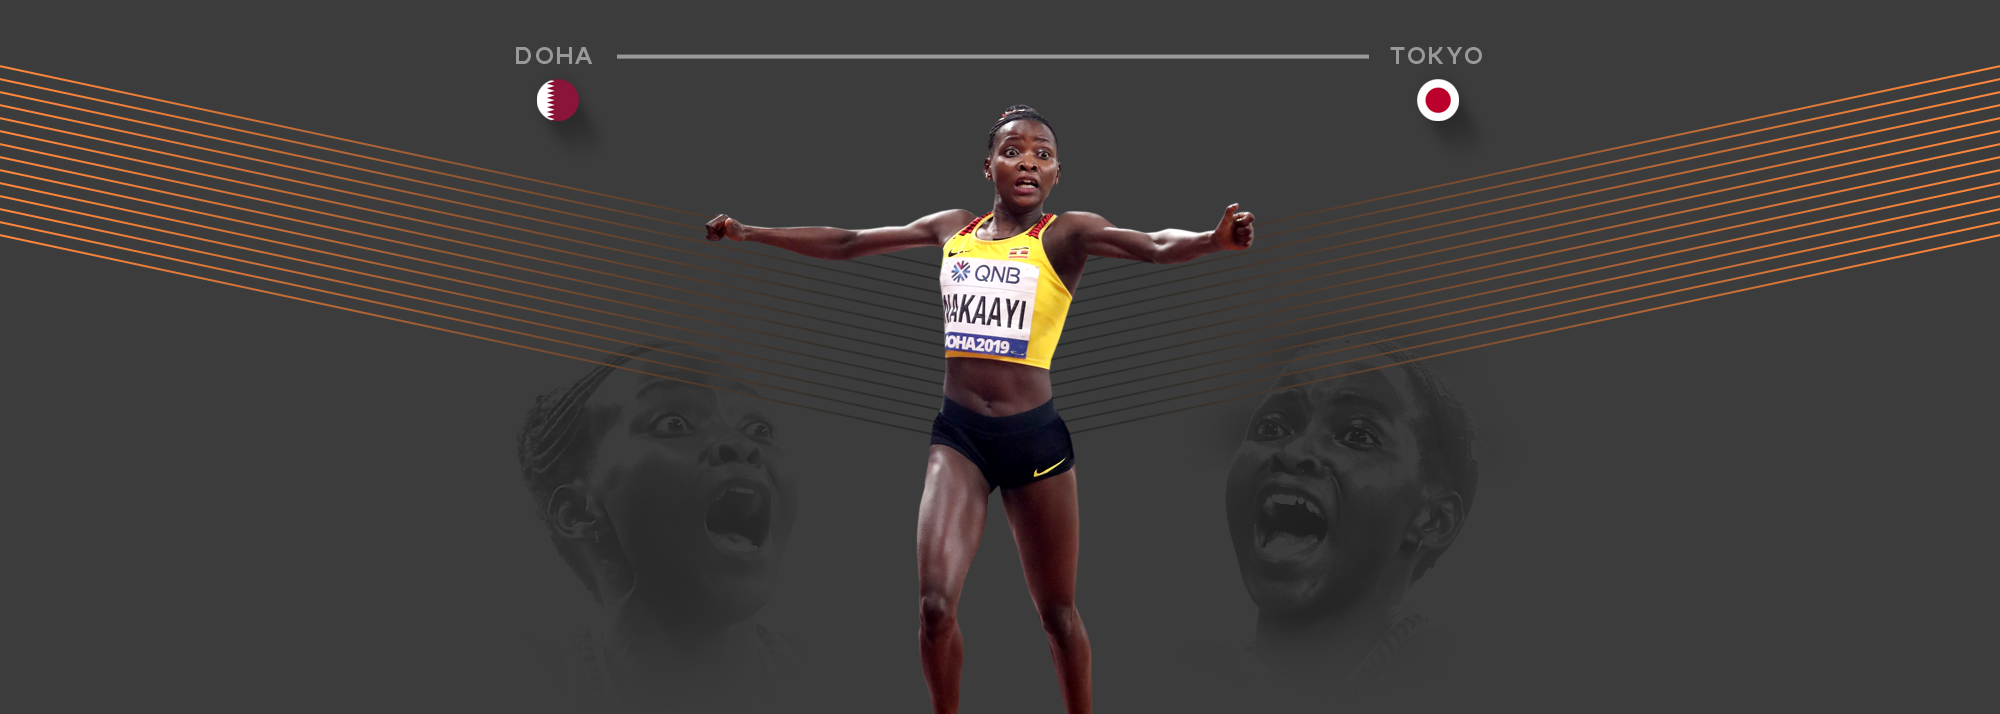 World 800m champion Halimah Nakaayi's journey to the Tokyo Olympics